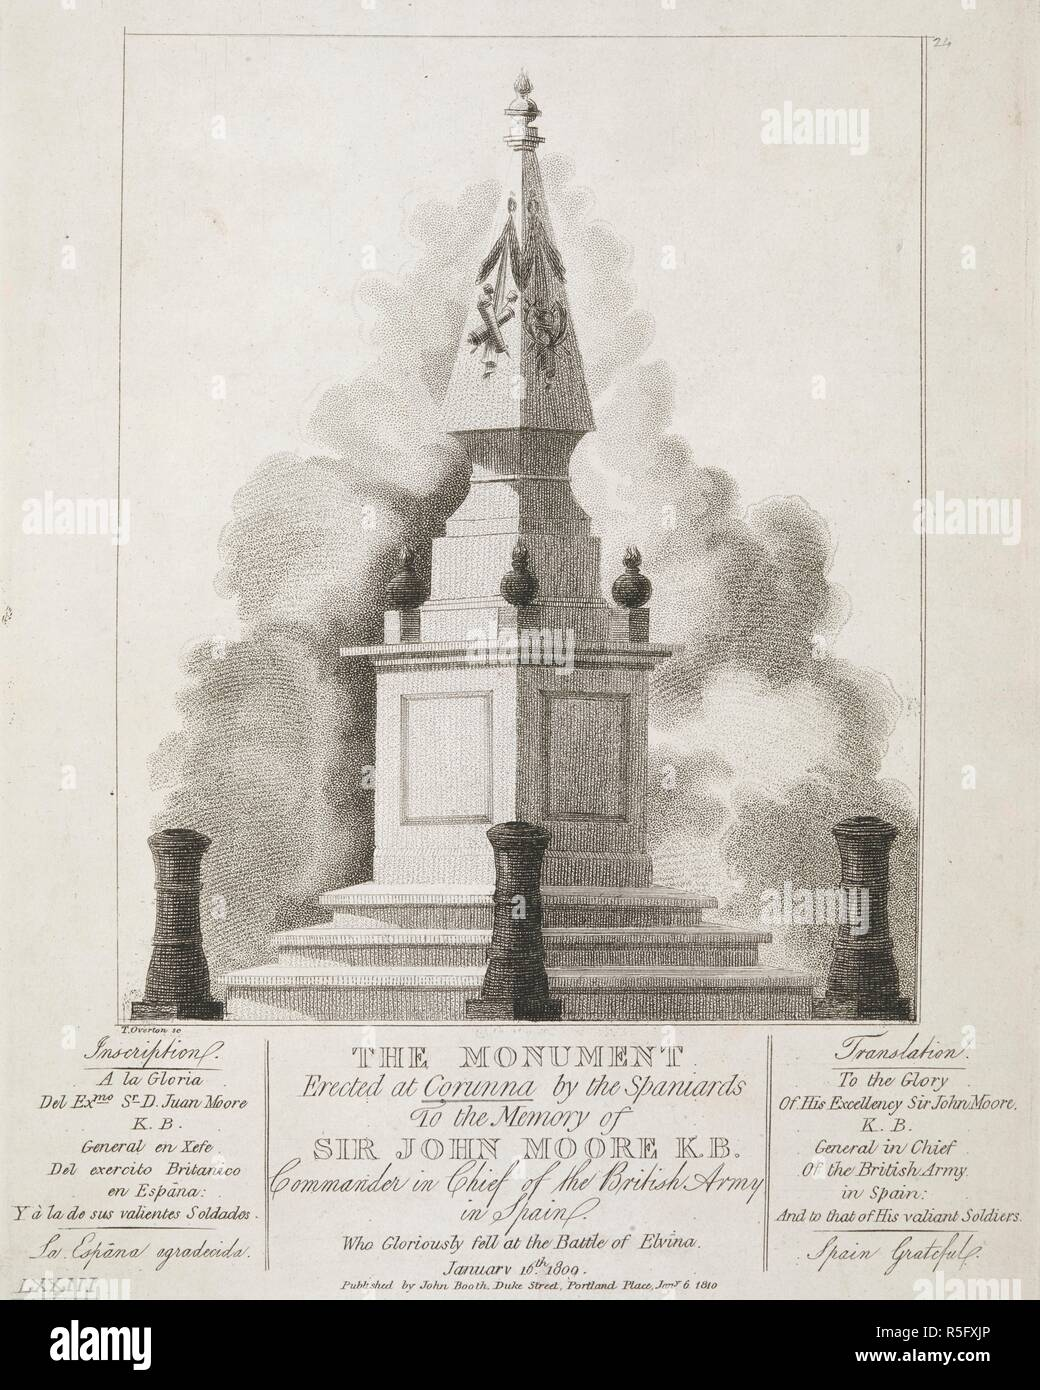 A Pyramid Decorated With Military Regalia And Flaming Spheres On Square Plinth Three Steps Enclosed By Cannon Shaped Poles